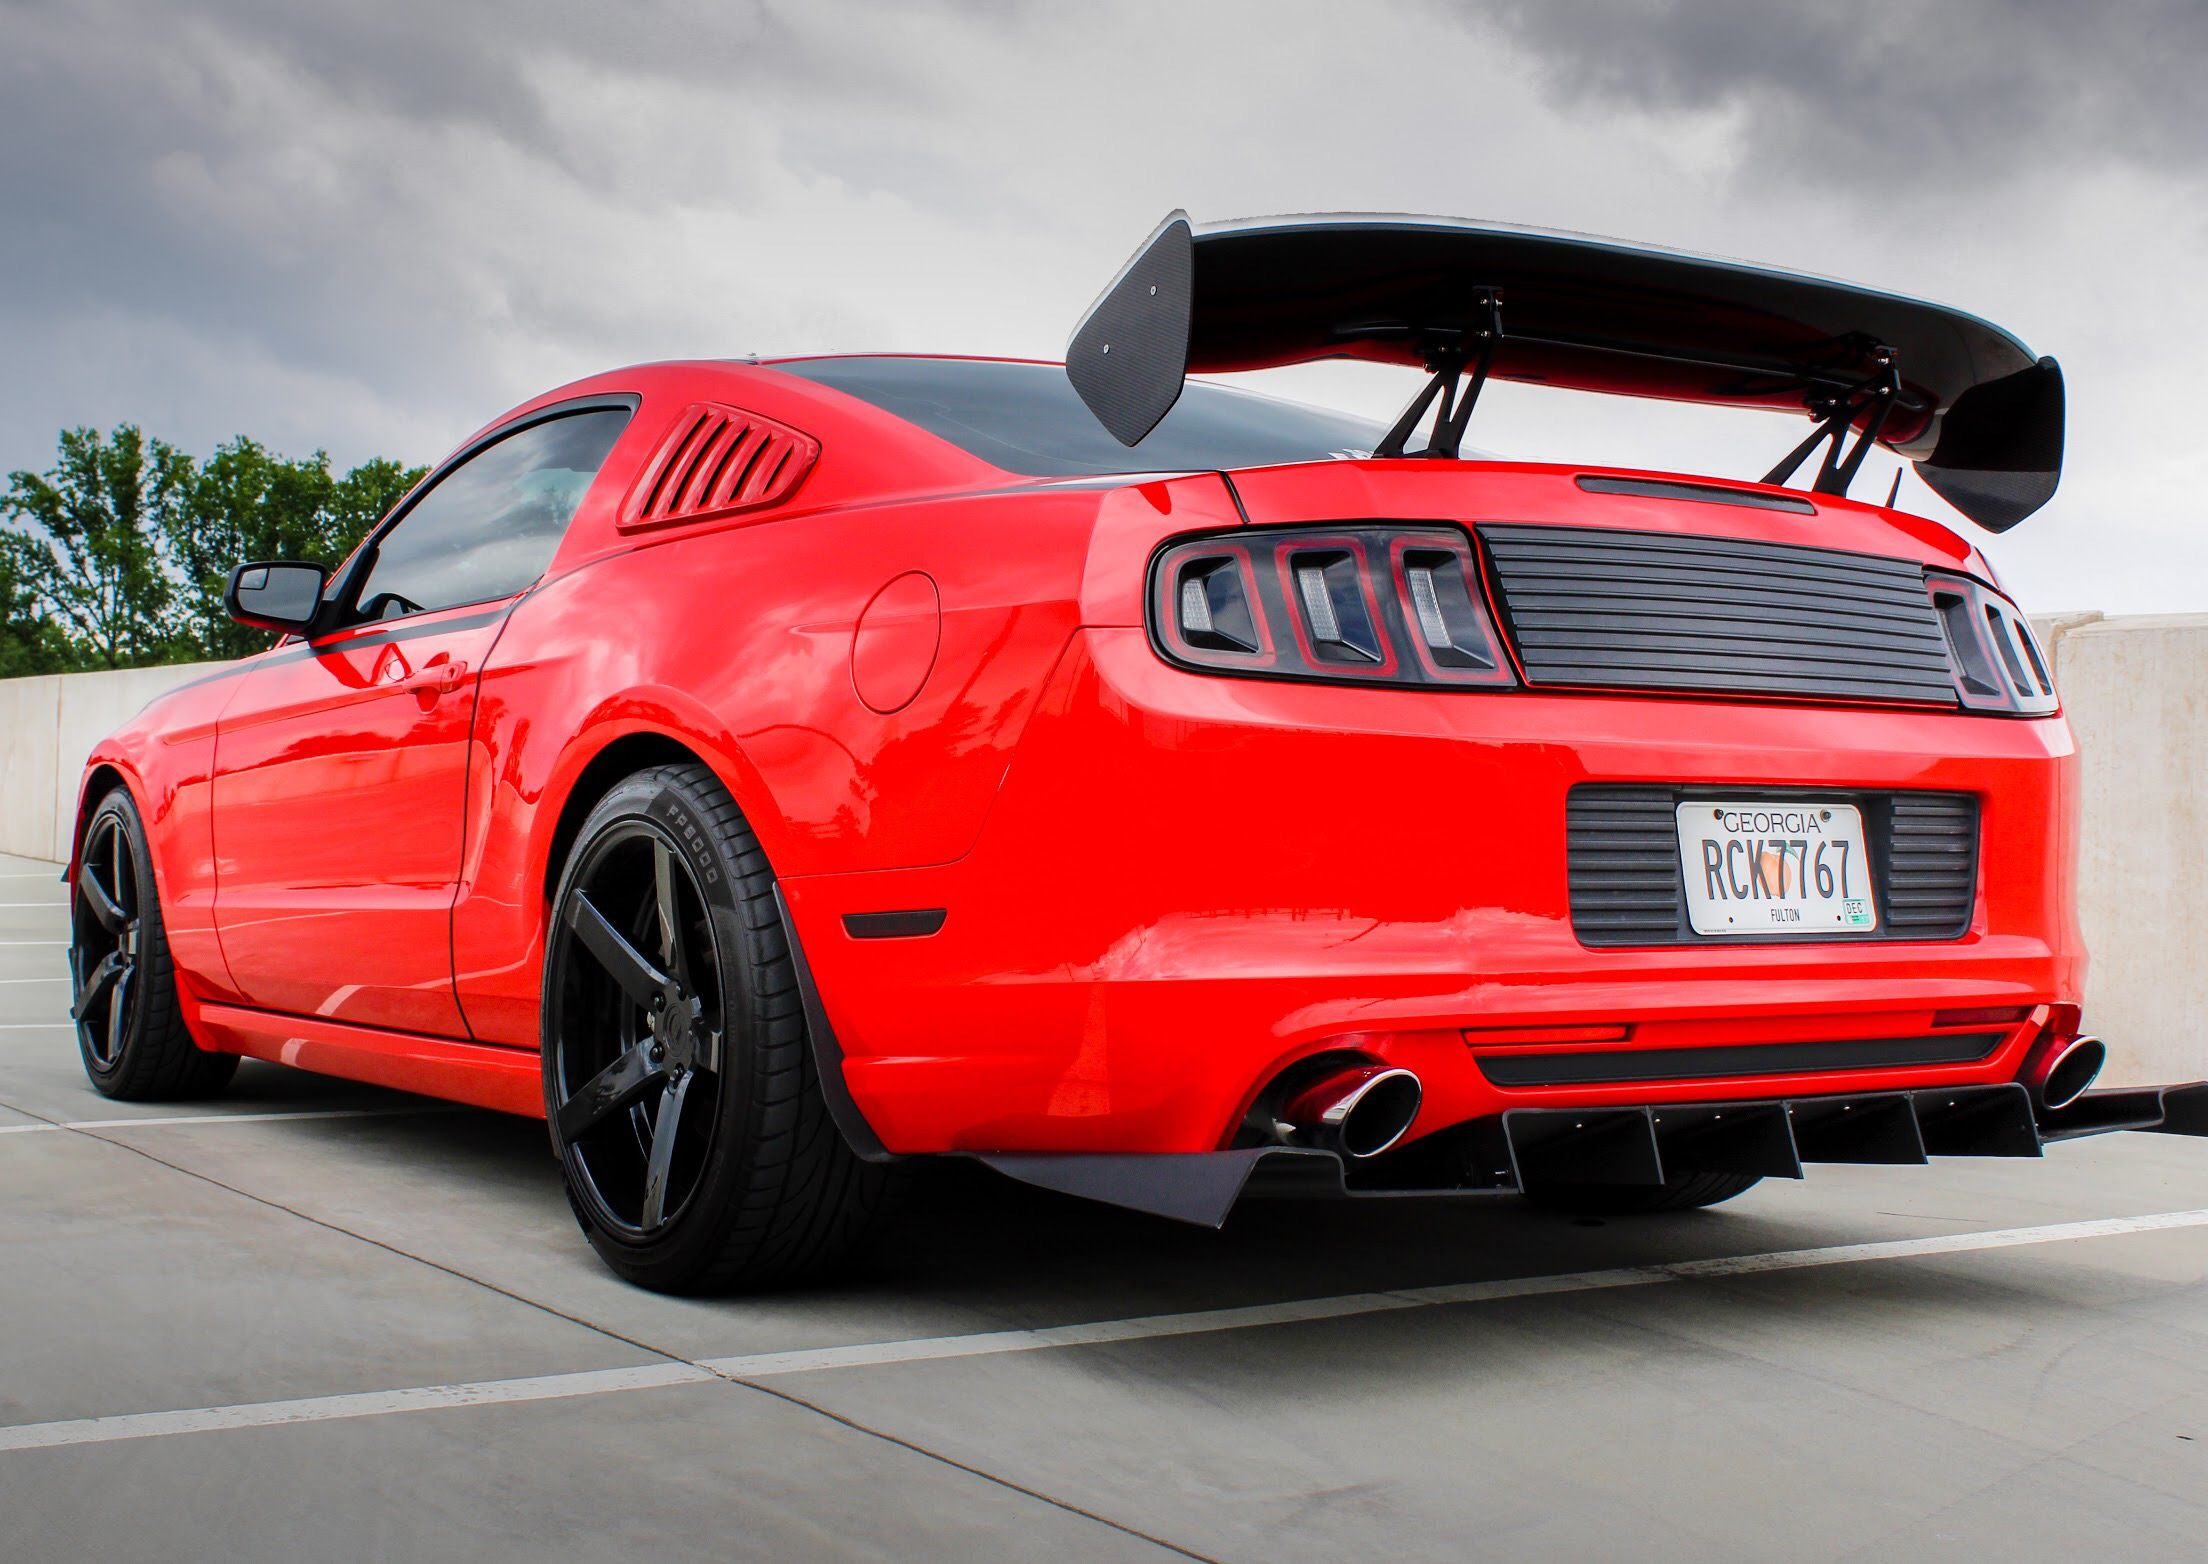 Throtl 2013 14 ford mustang custom rear diffuser